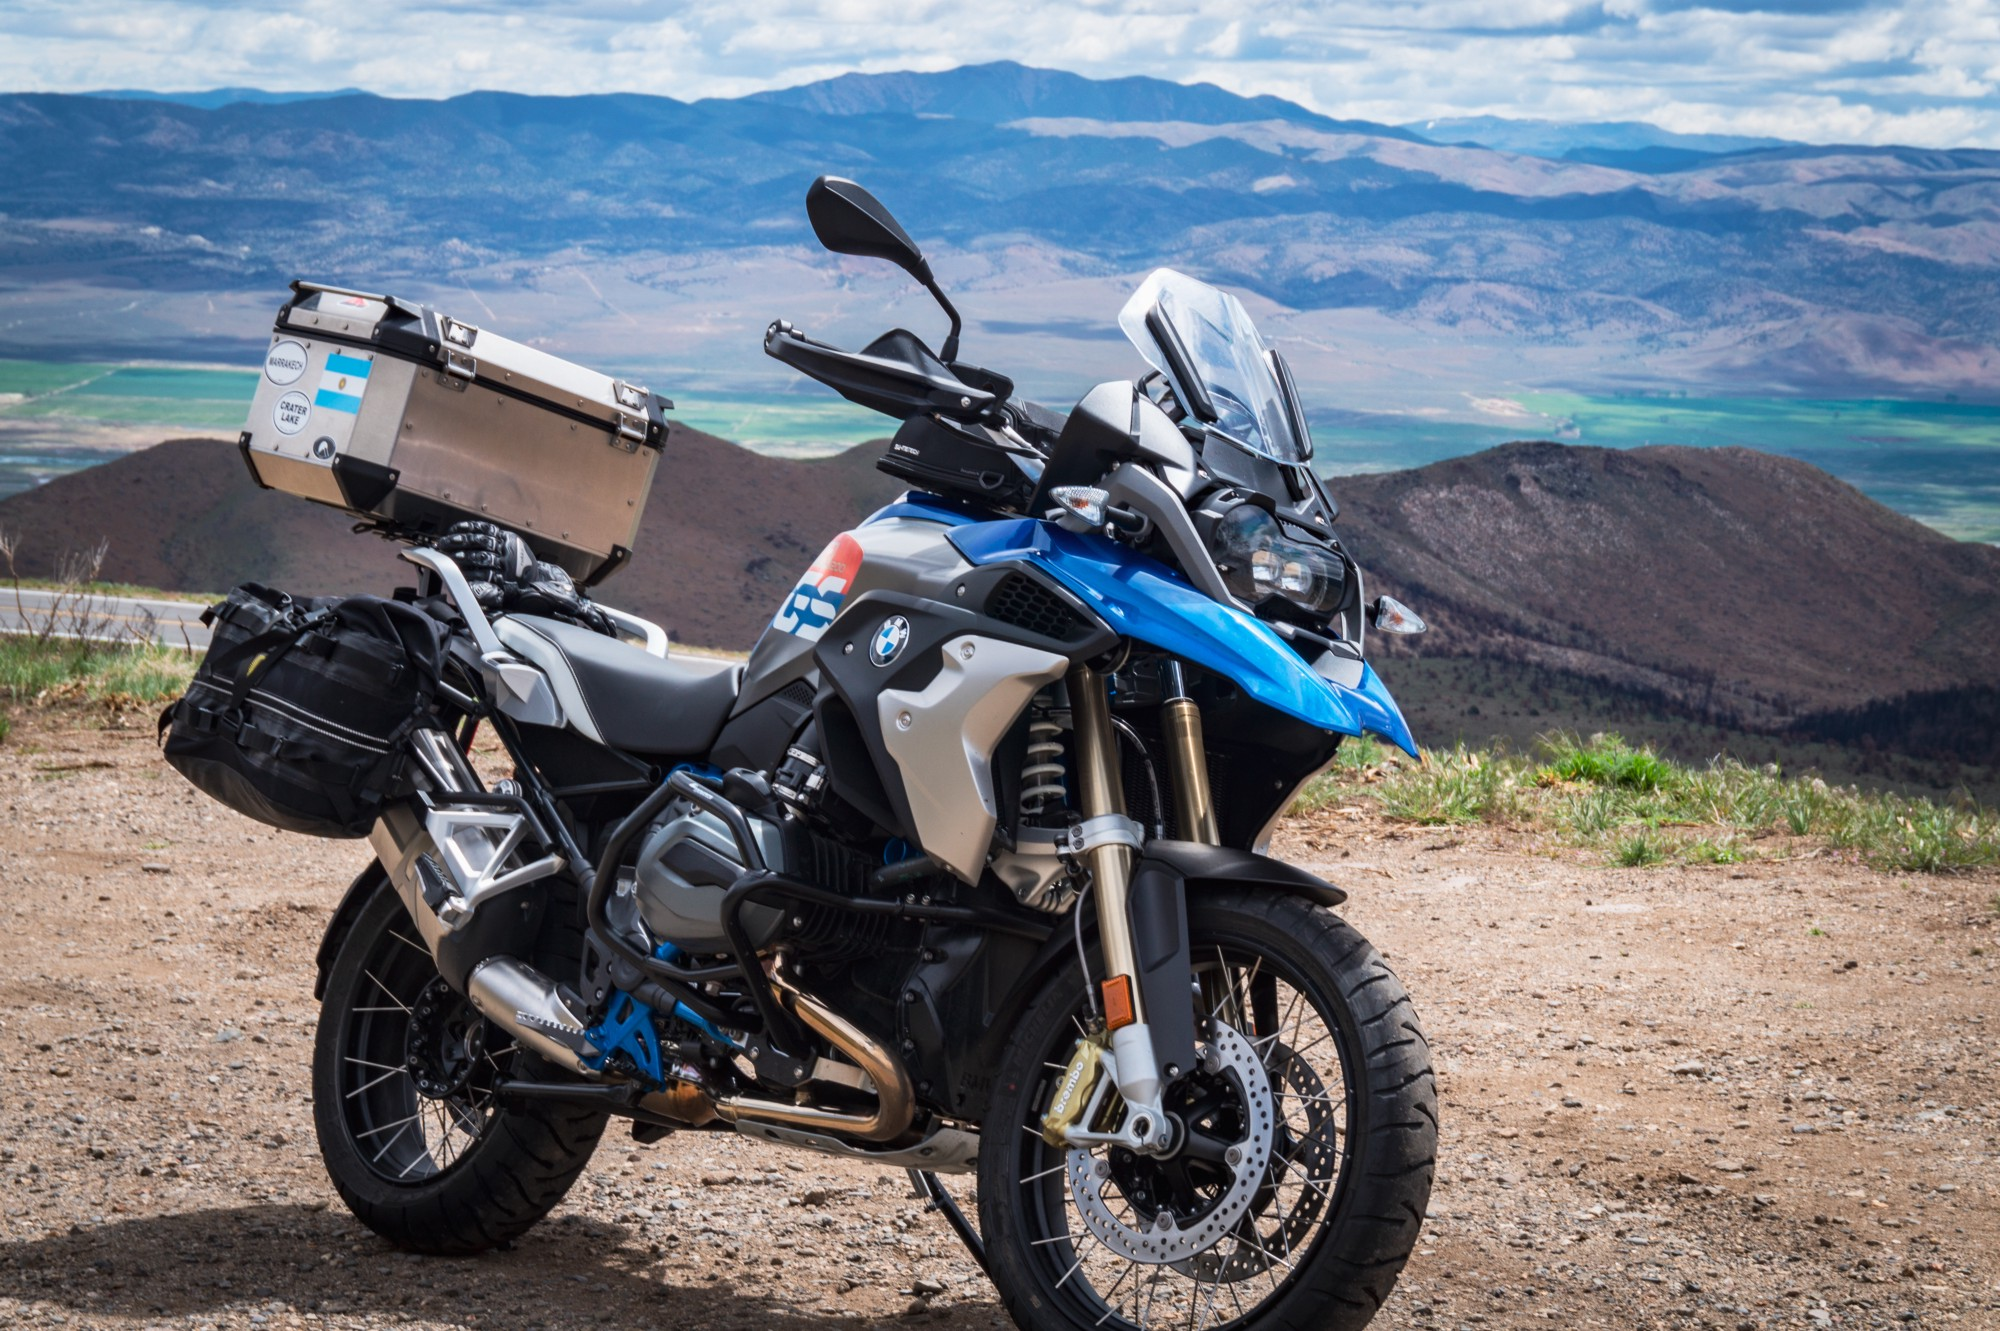 an honest motorcycle review the 2018 bmw r1200gs lowered rallye spec. Black Bedroom Furniture Sets. Home Design Ideas